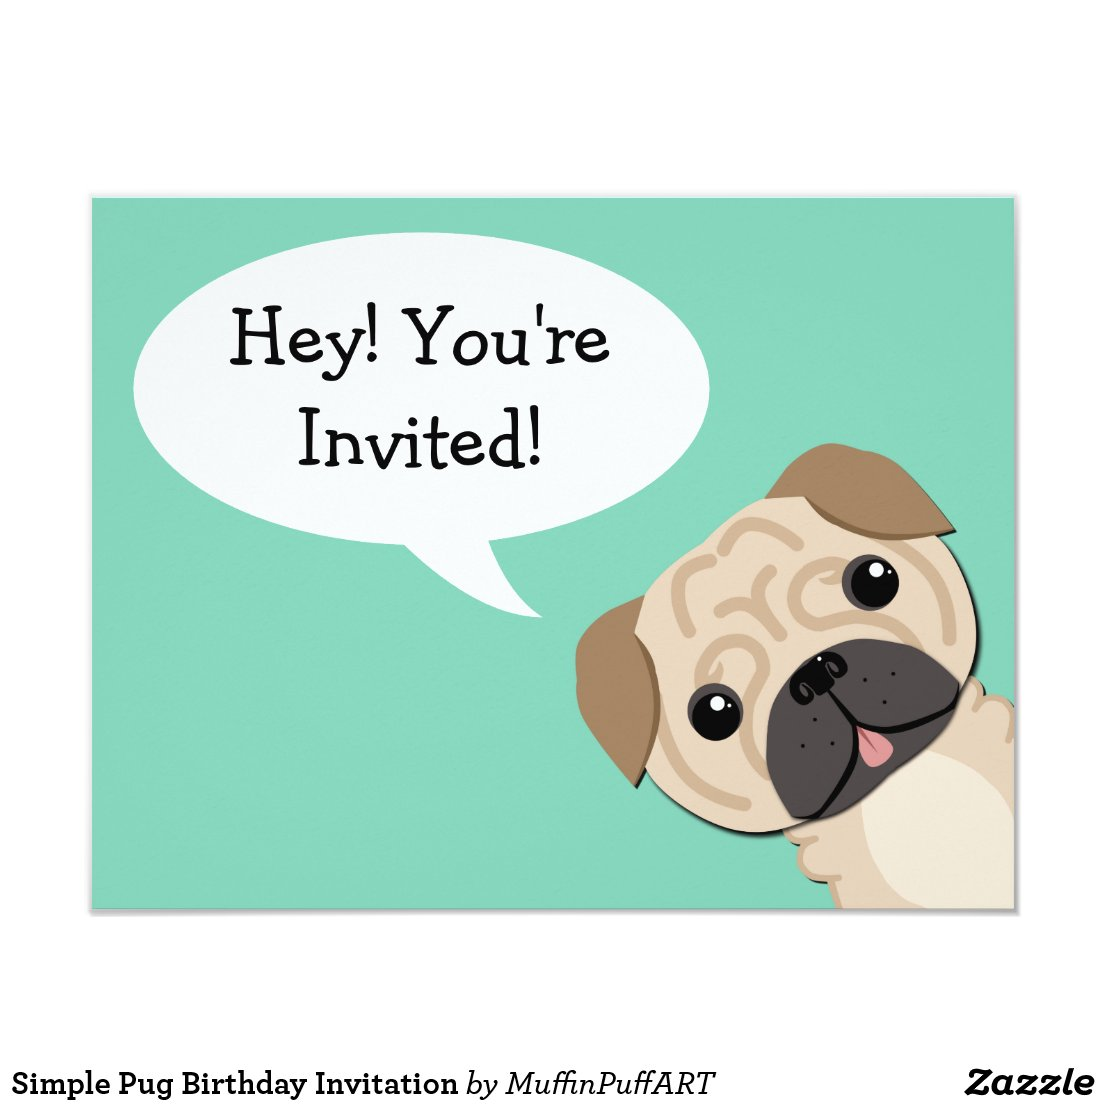 Simple Pug Birthday Invitation